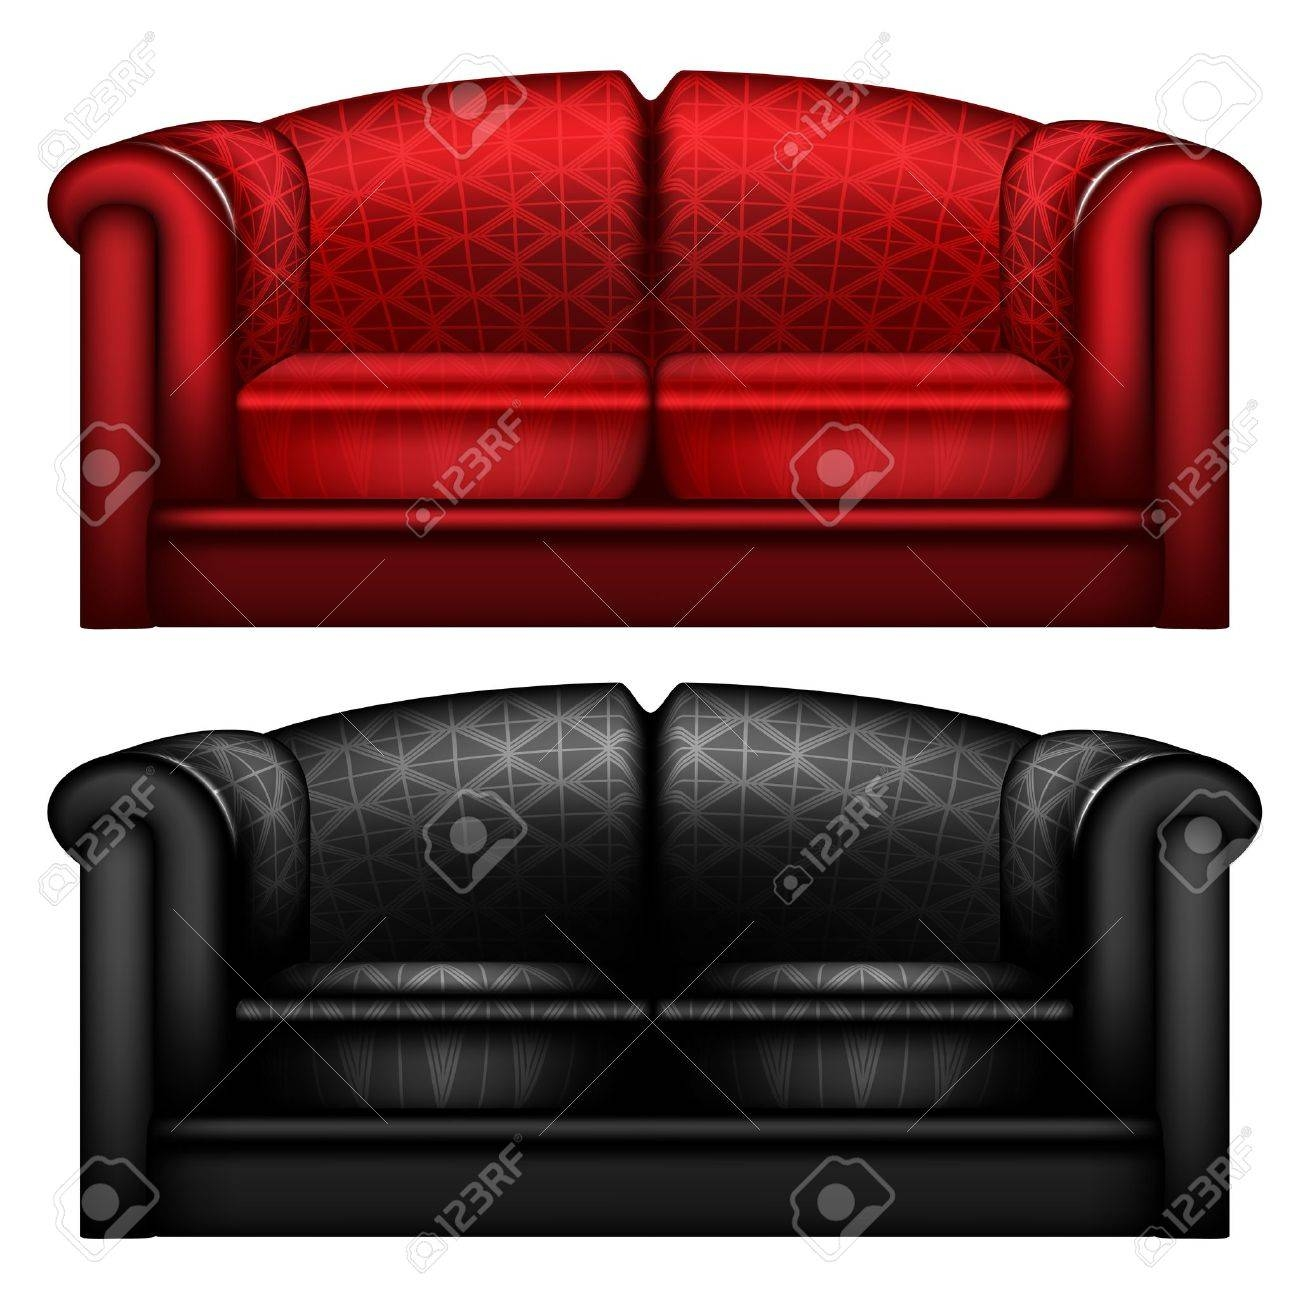 Black And Red Leather Sofa Isolated Stock Photo, Picture And Inside Sofa Red And Black (View 9 of 25)